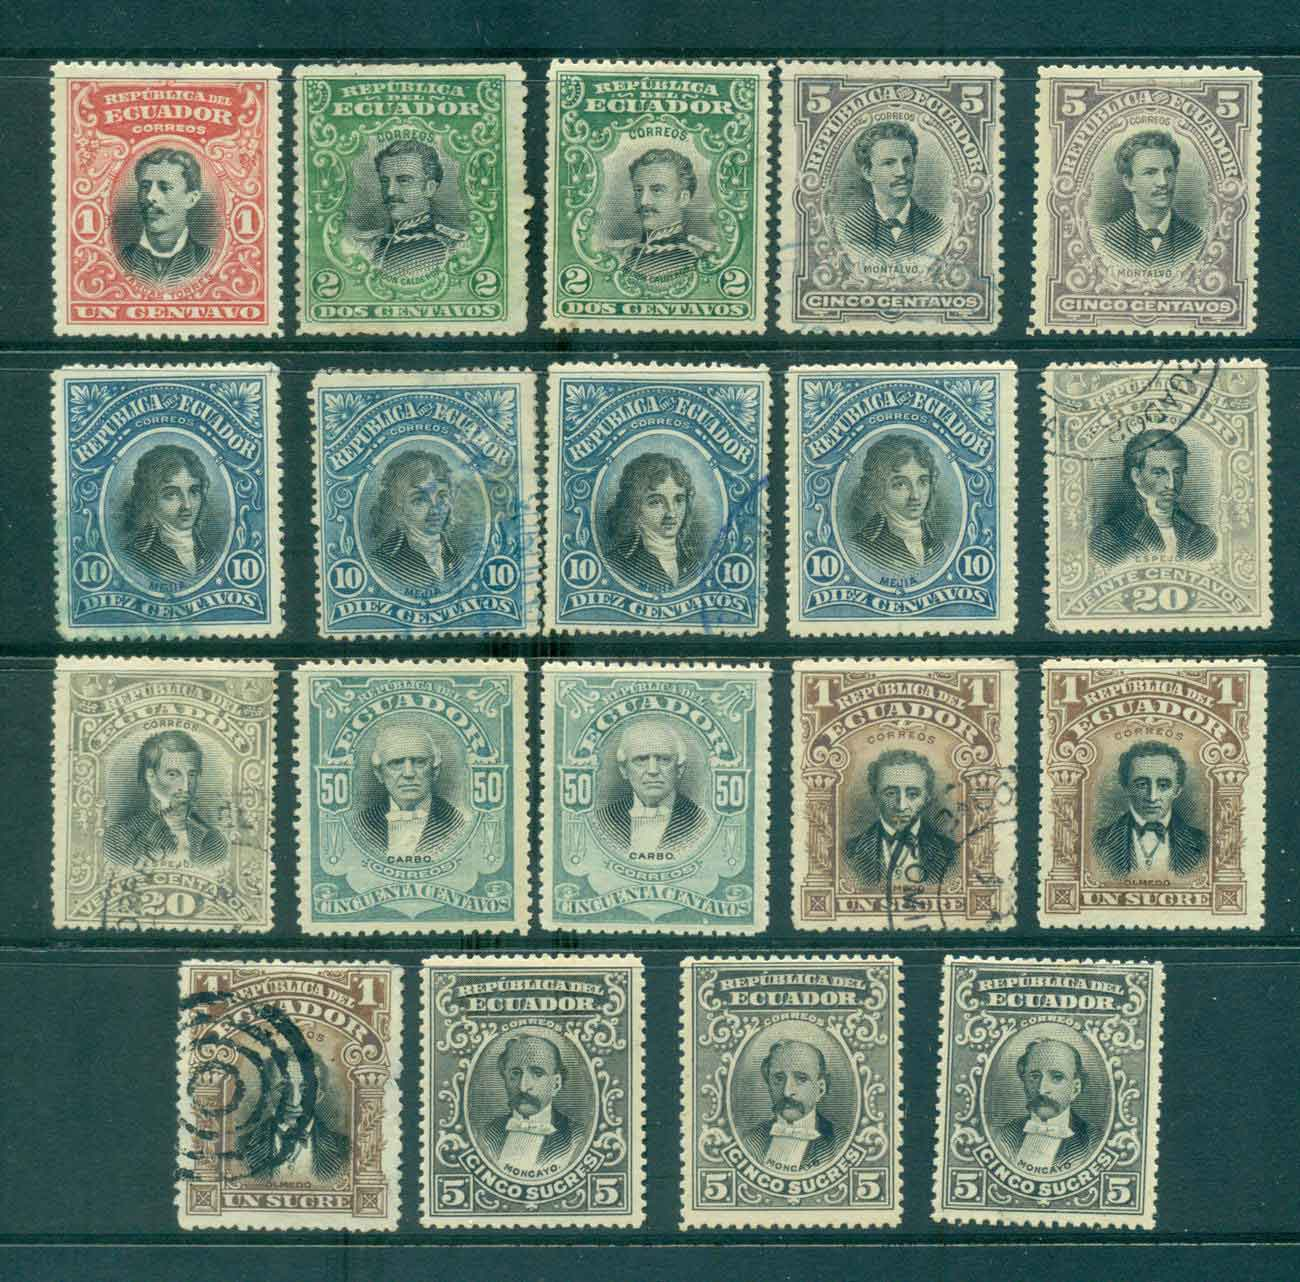 Ecuador 1901 Portraits Asst (19) (faults) MH/FU Lot46599